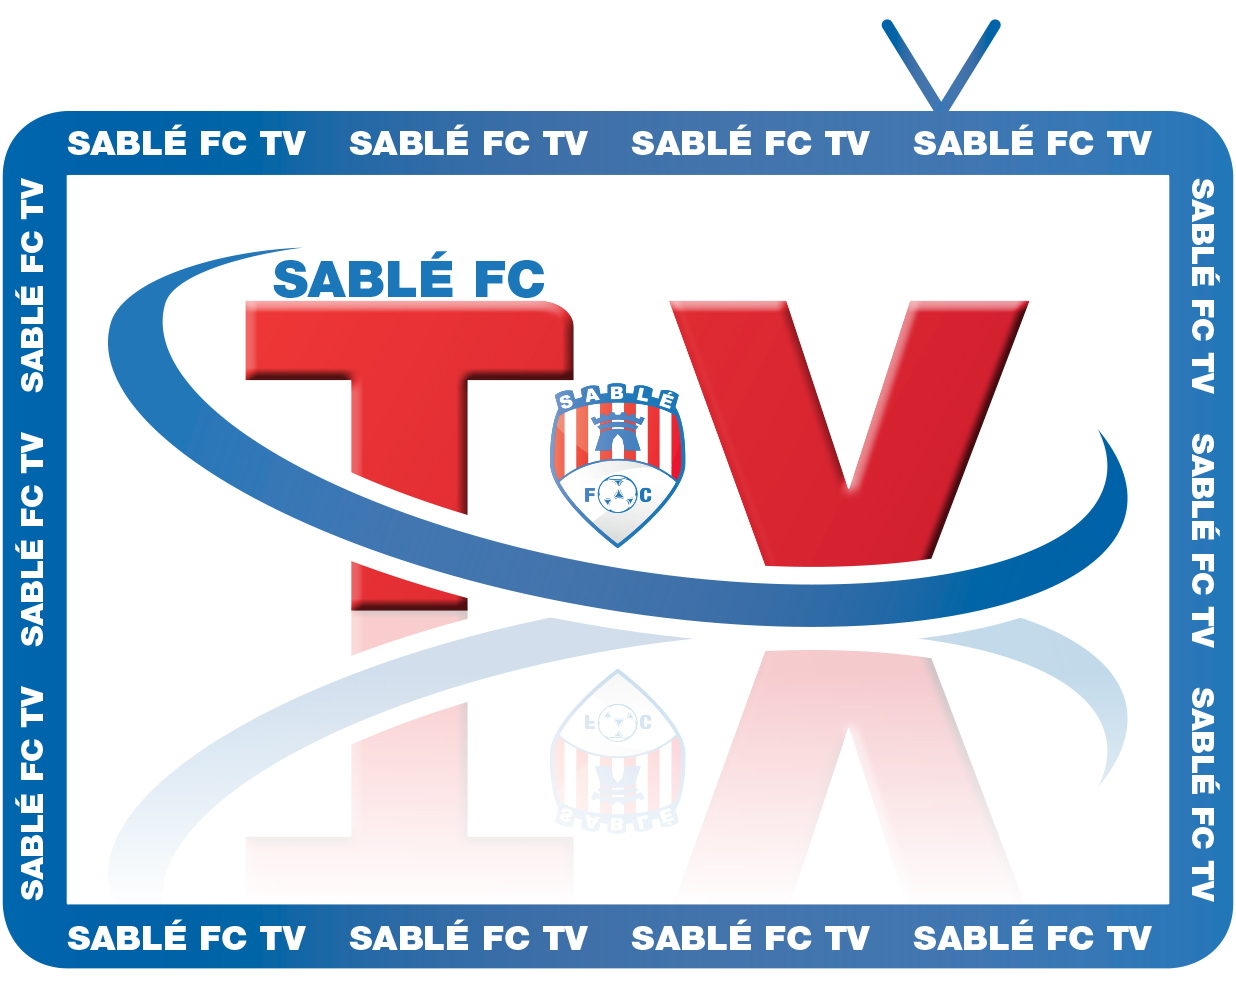 Banniere Sable FC TV.jpg